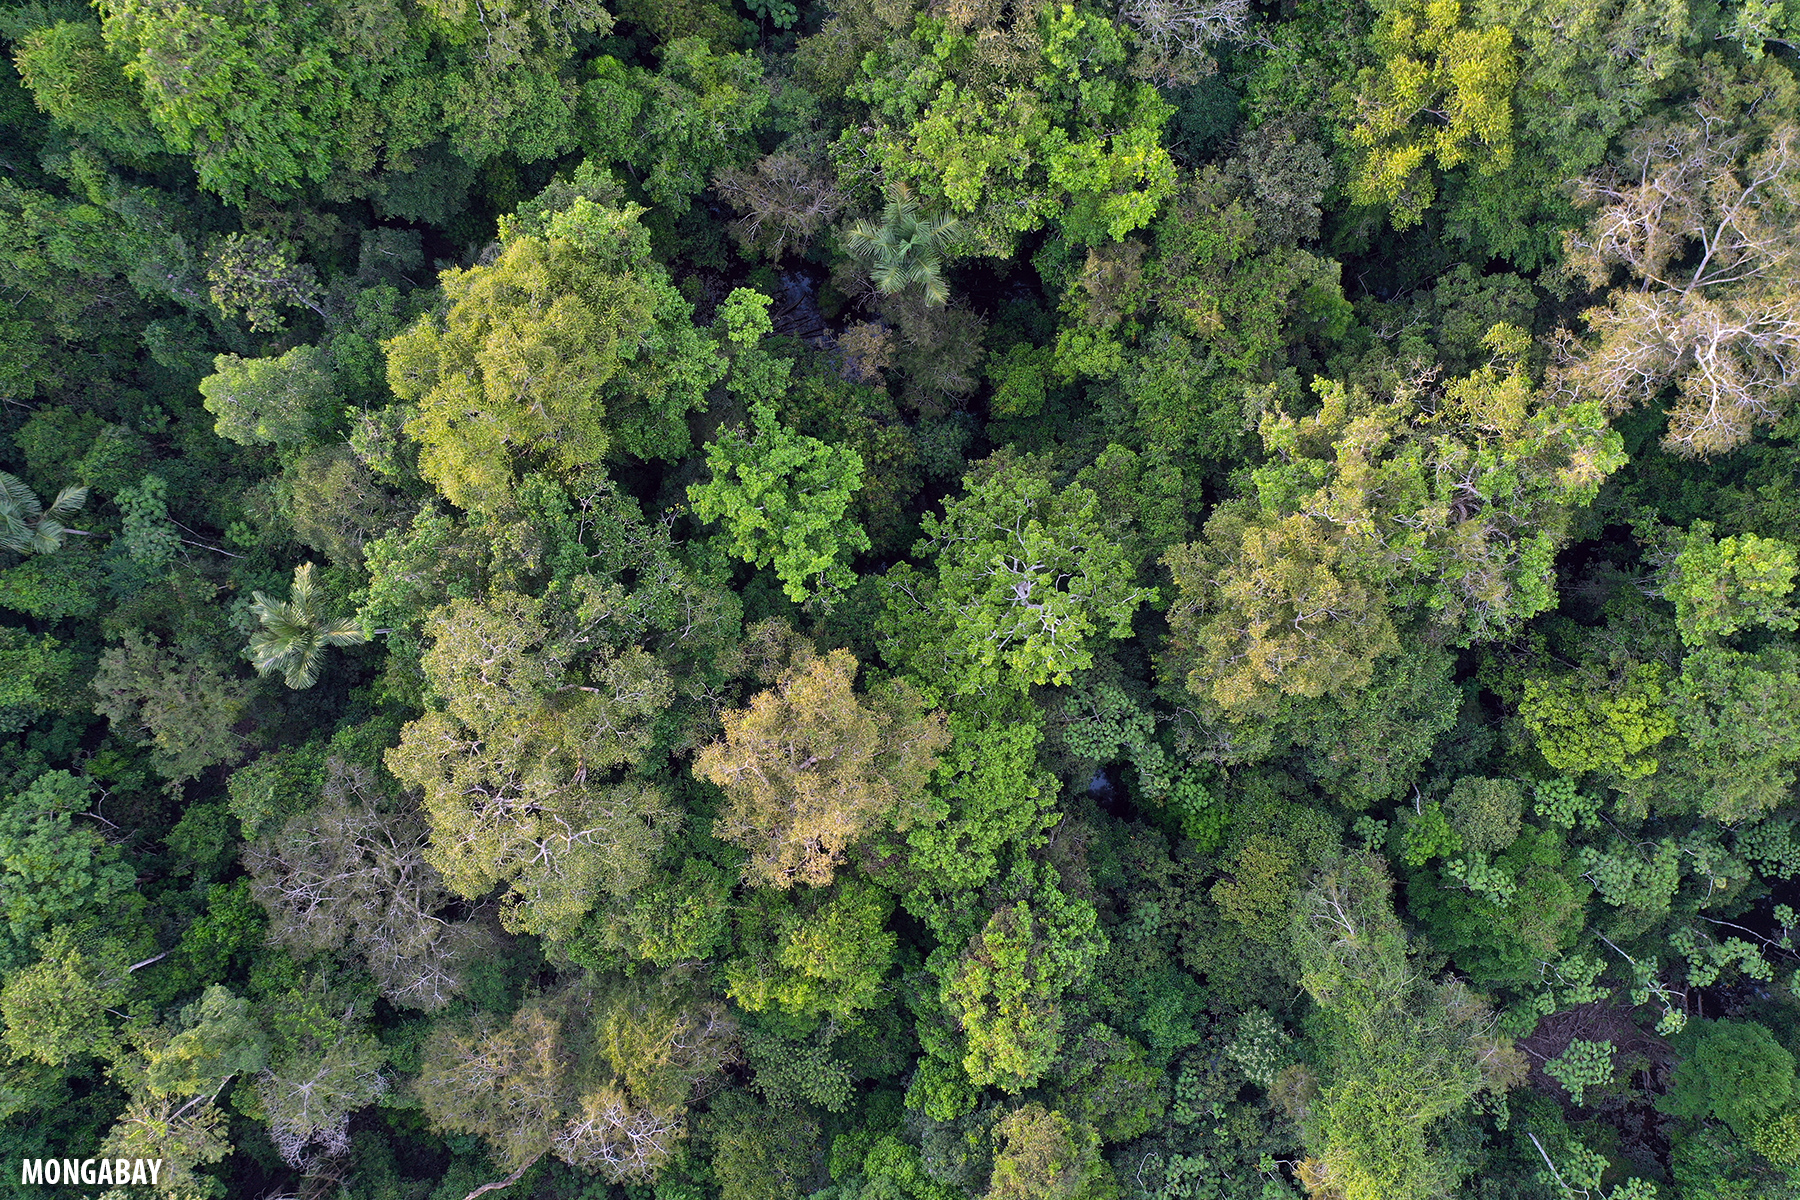 Amazon rainforest canopy in Brazil. Photo by Rhett A. Butler for Mongabay.